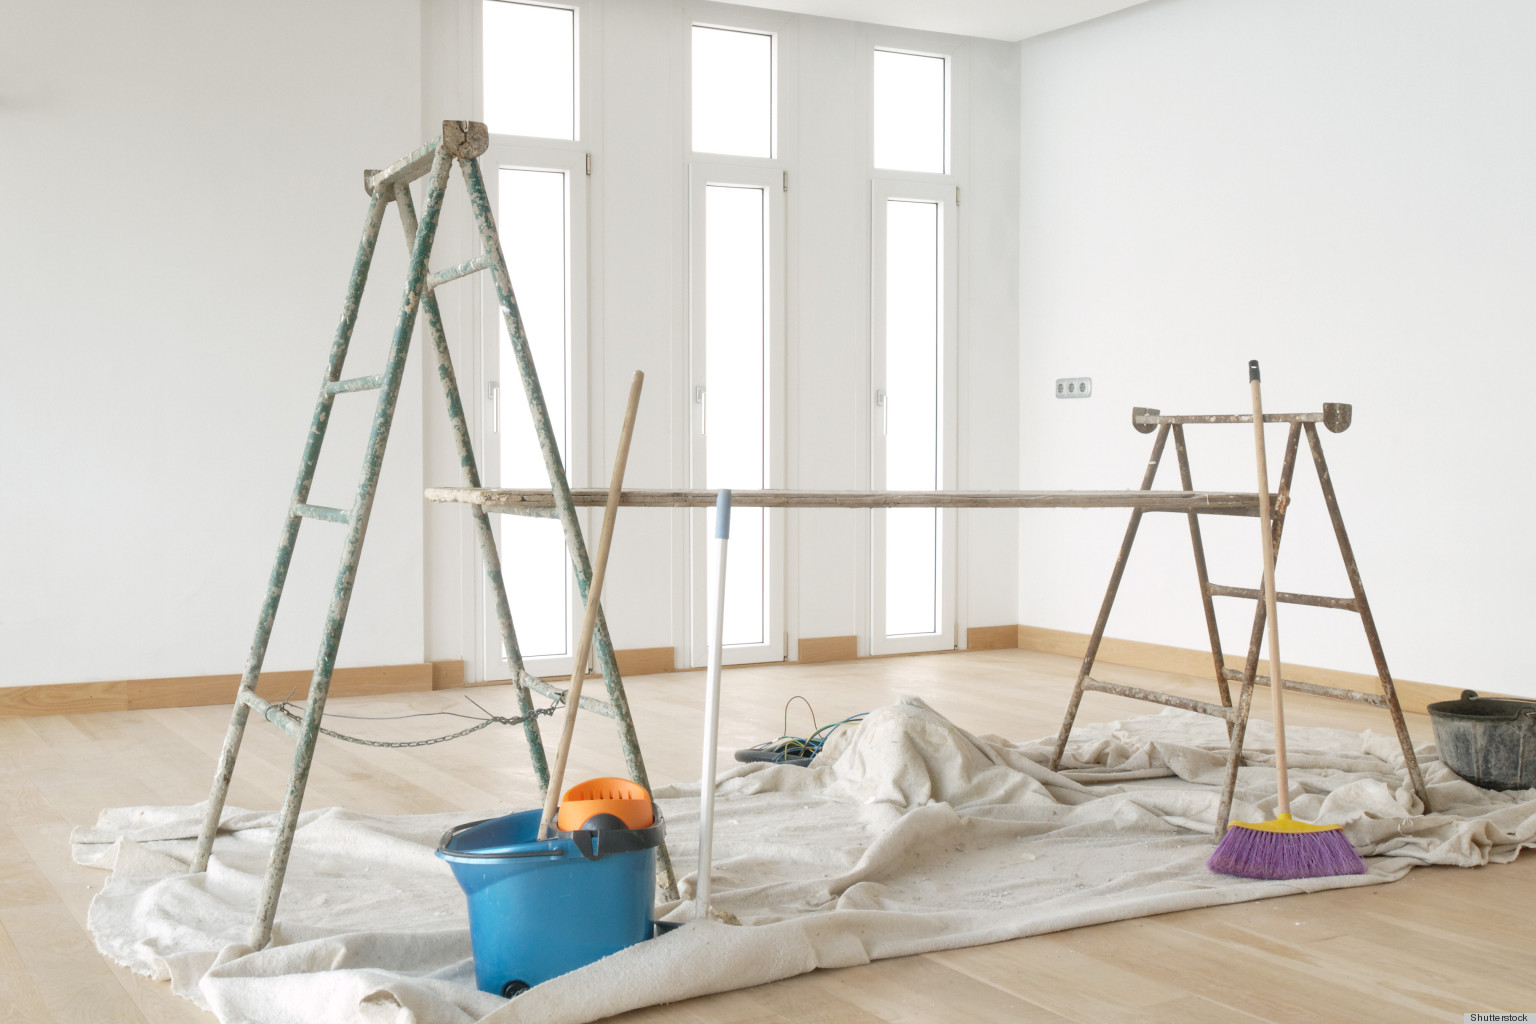 House Painting Tips 8 stress-free painting tips to make sprucing up your home a breeze